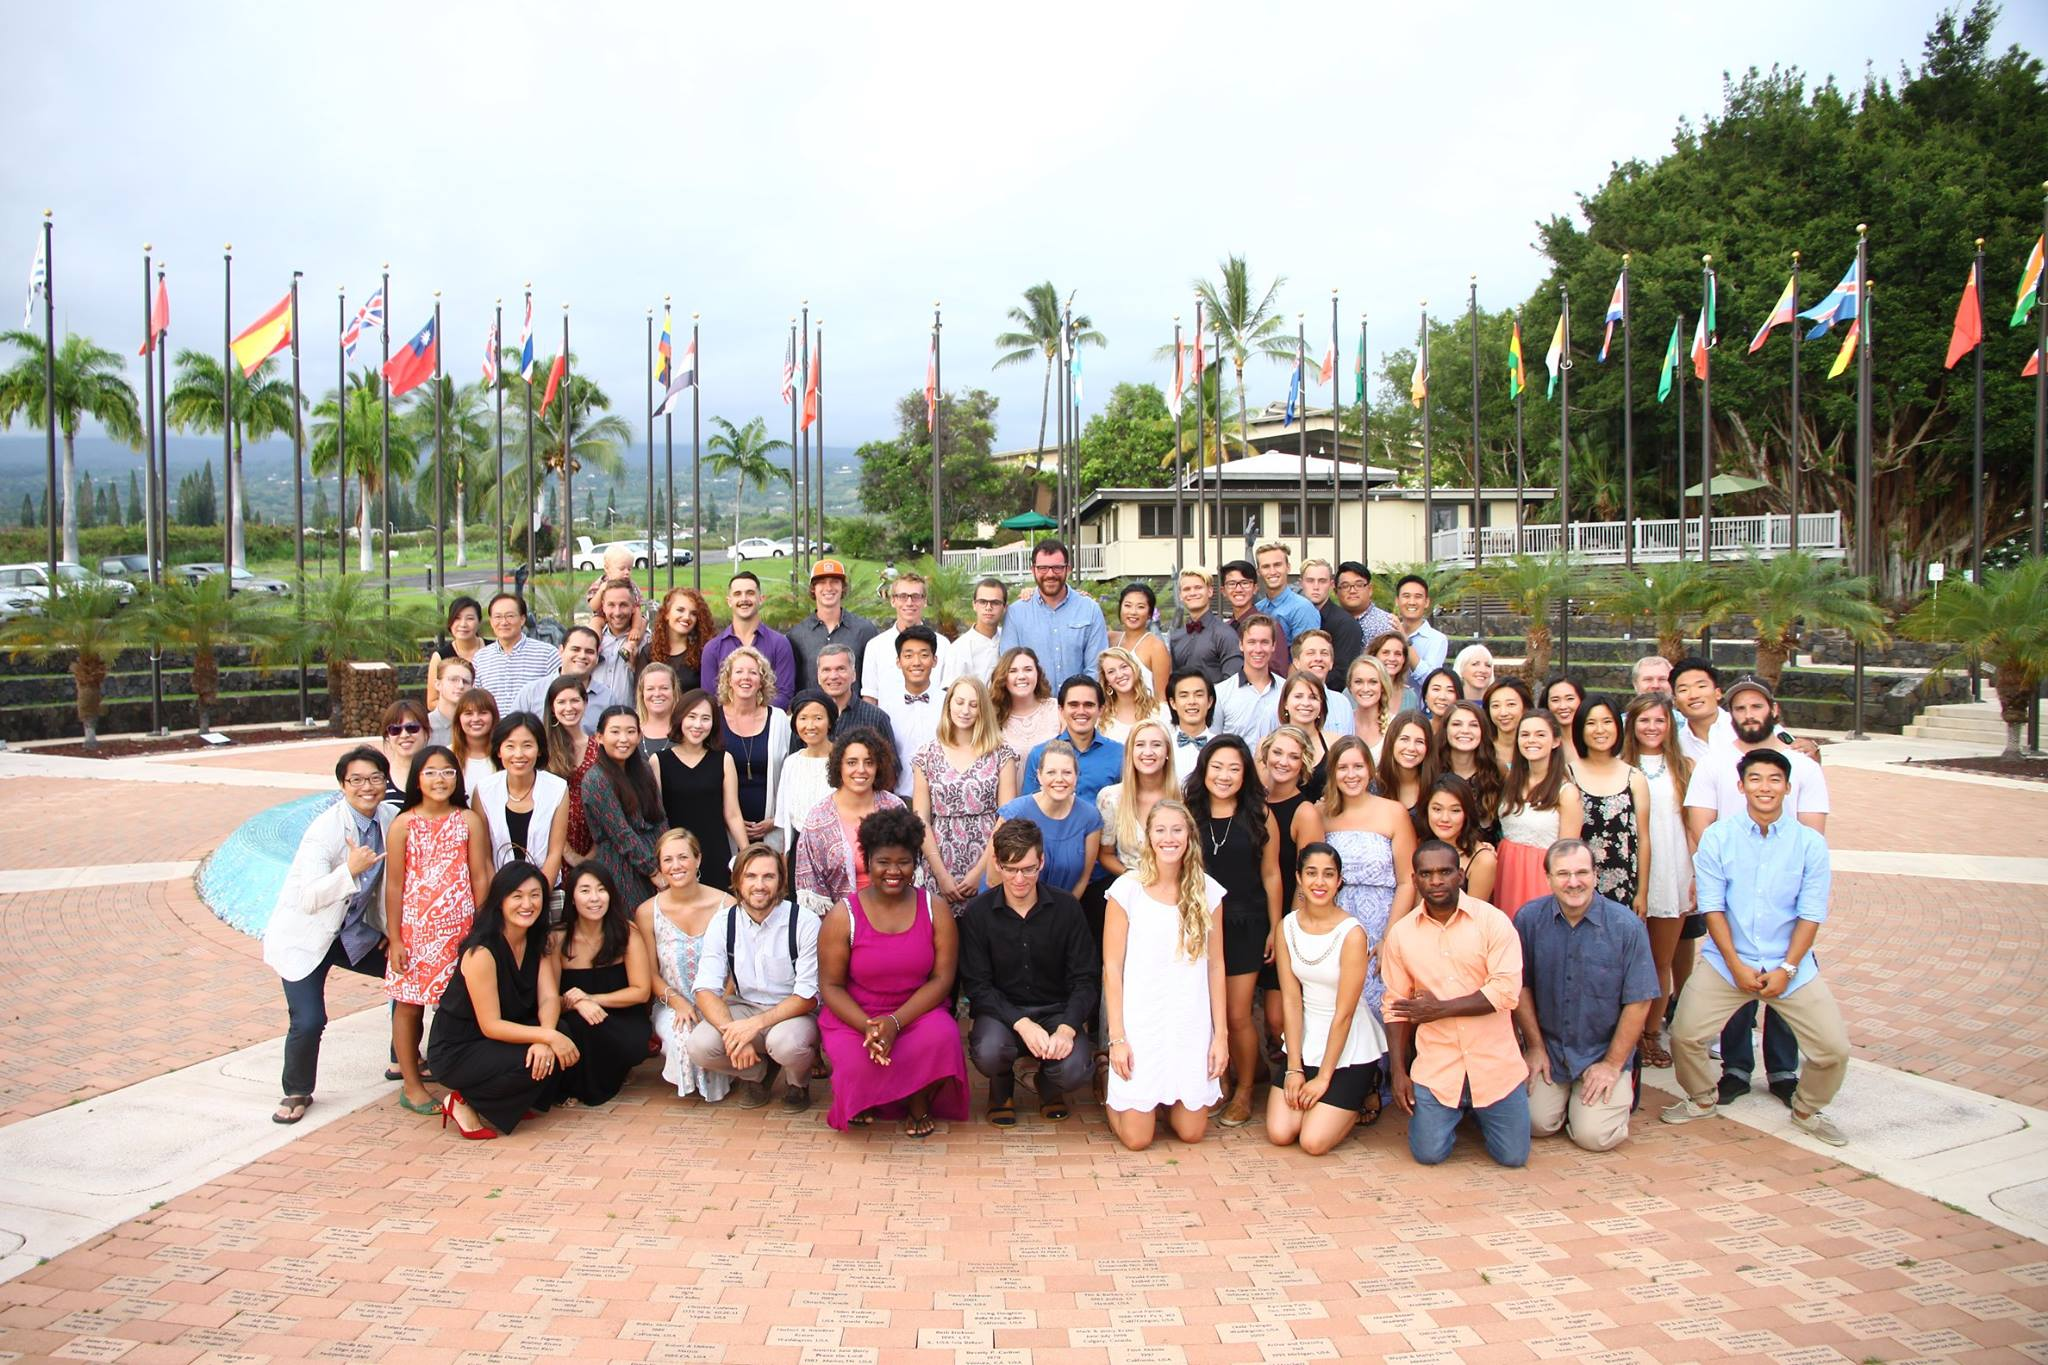 DTS, DBS, and what's next for me at YWAM Kona